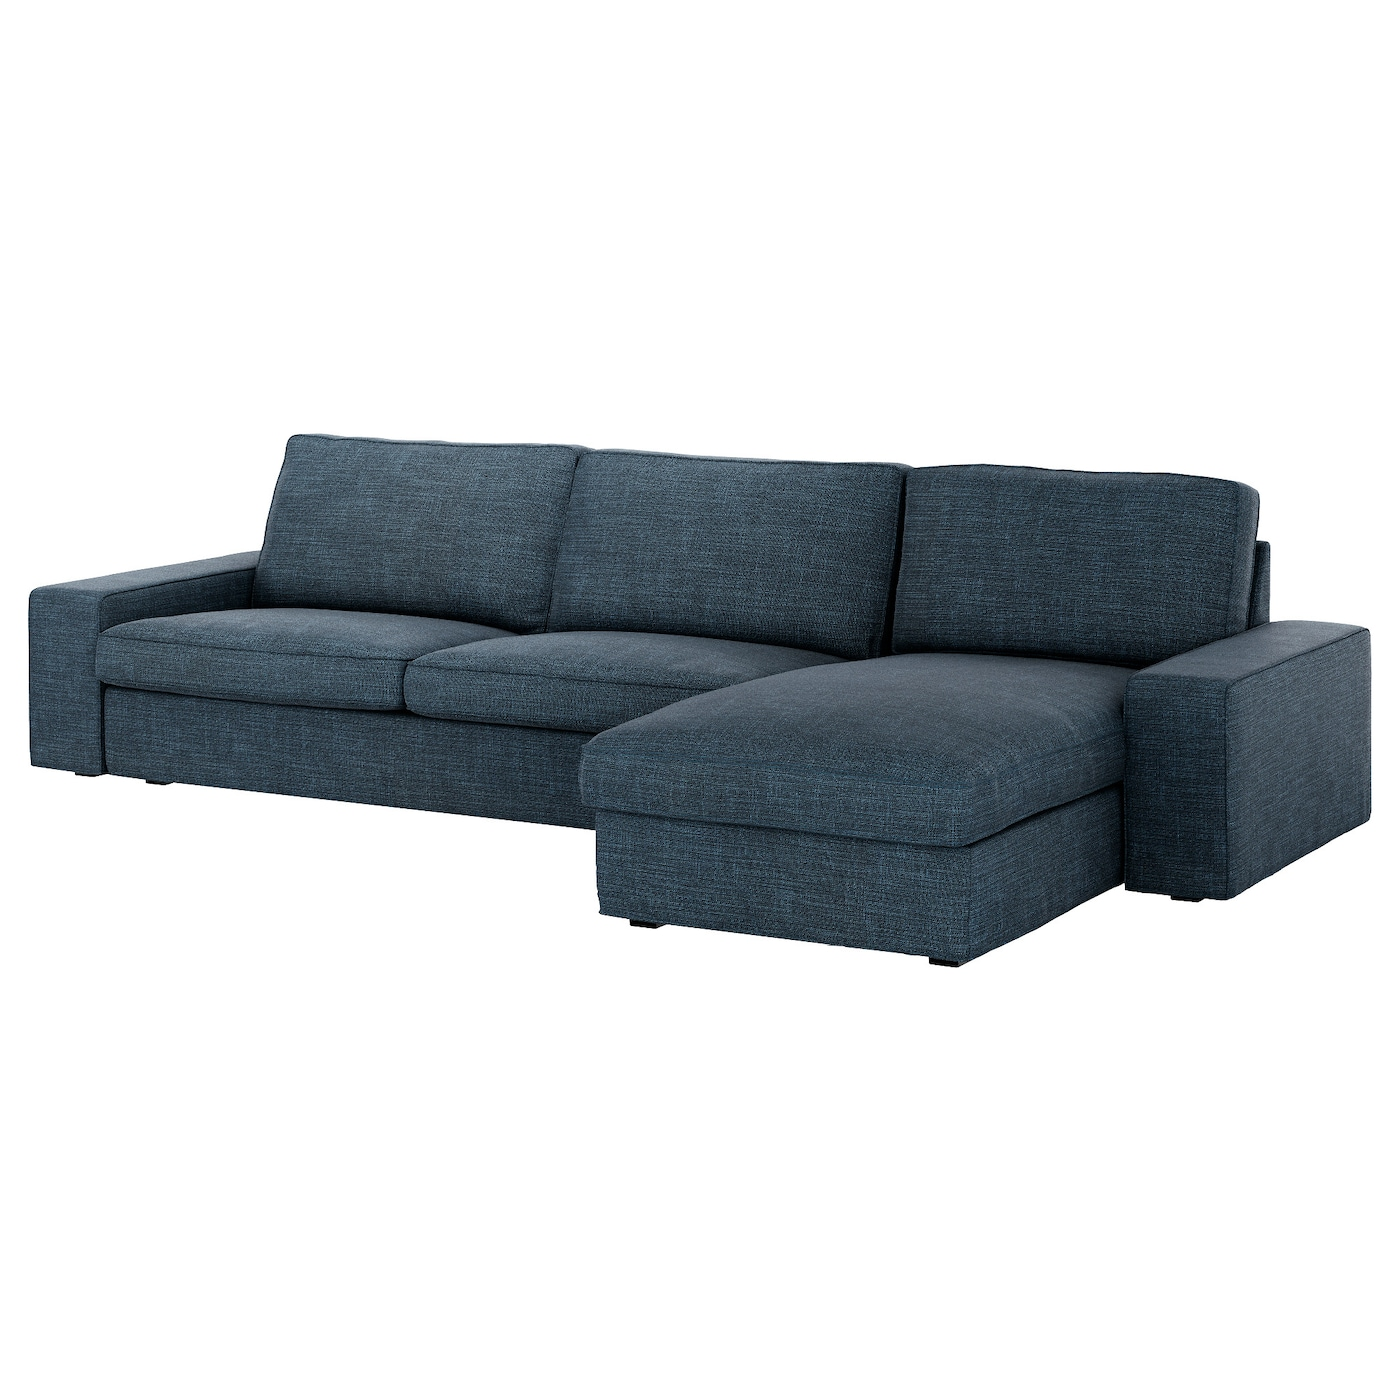 Kivik three seat sofa and chaise longue hillared dark blue for Sofa kivik 3 plazas